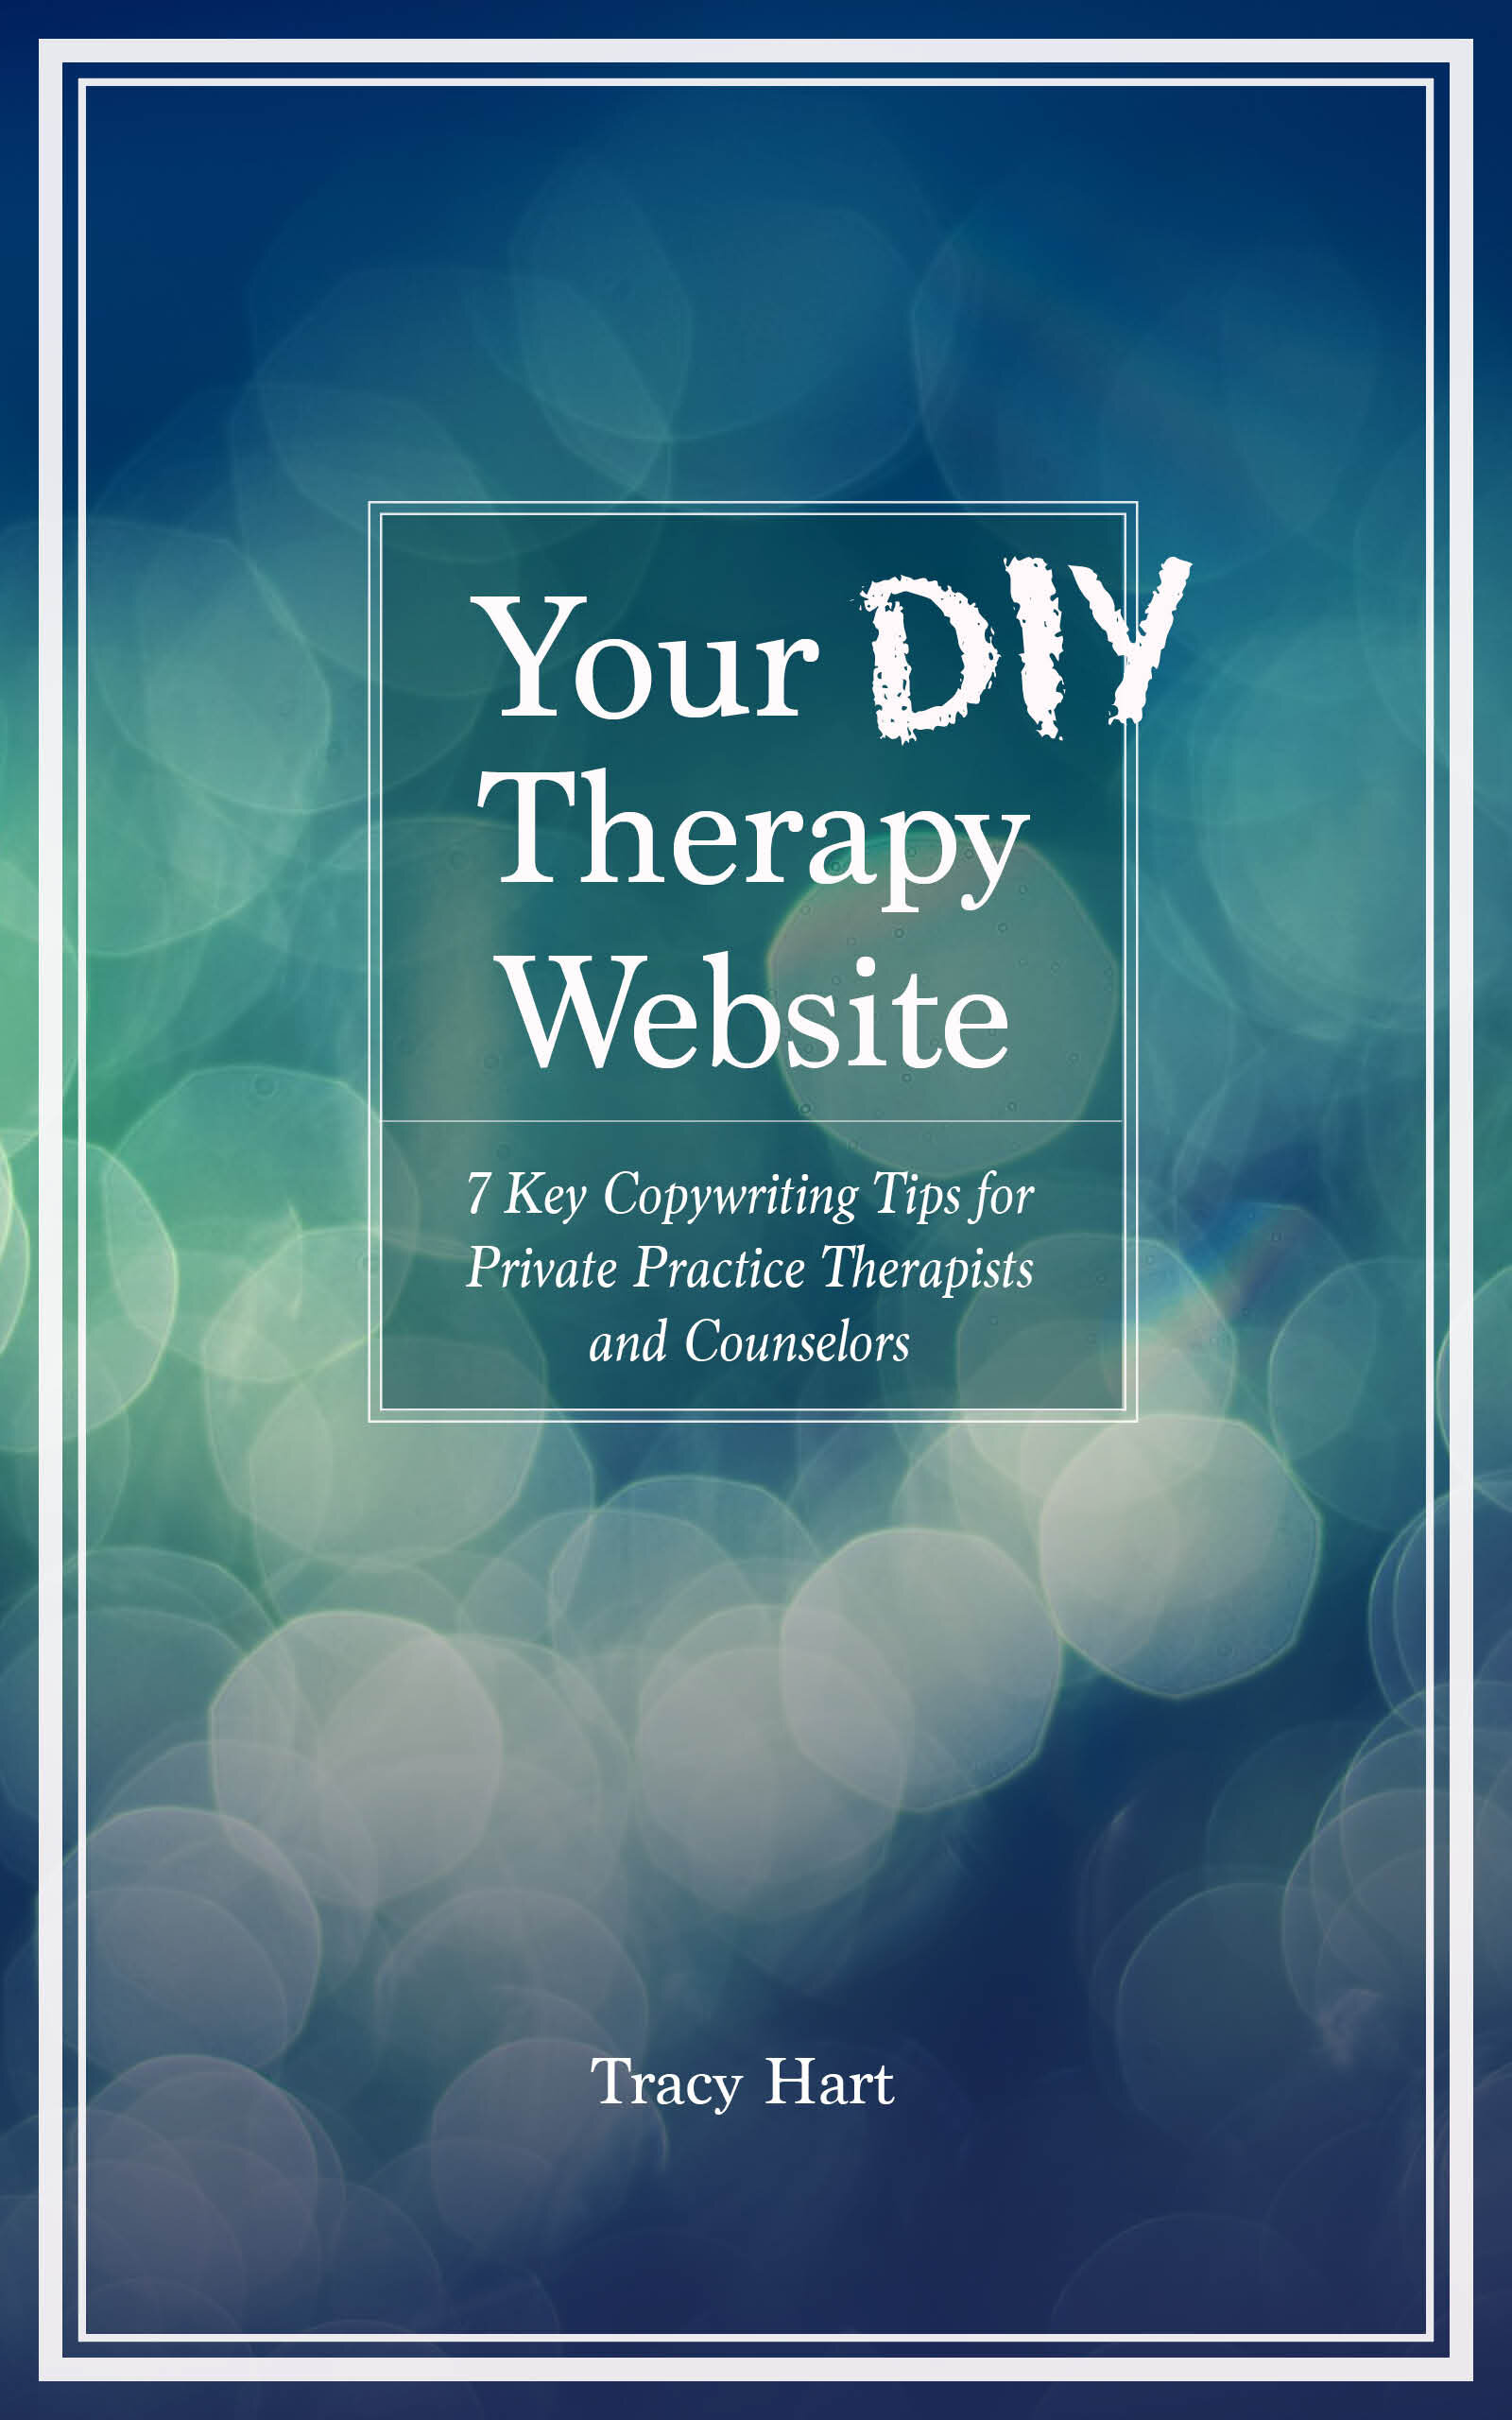 Your_DIY_Therapy_Website-Kindle-Cover.jpg